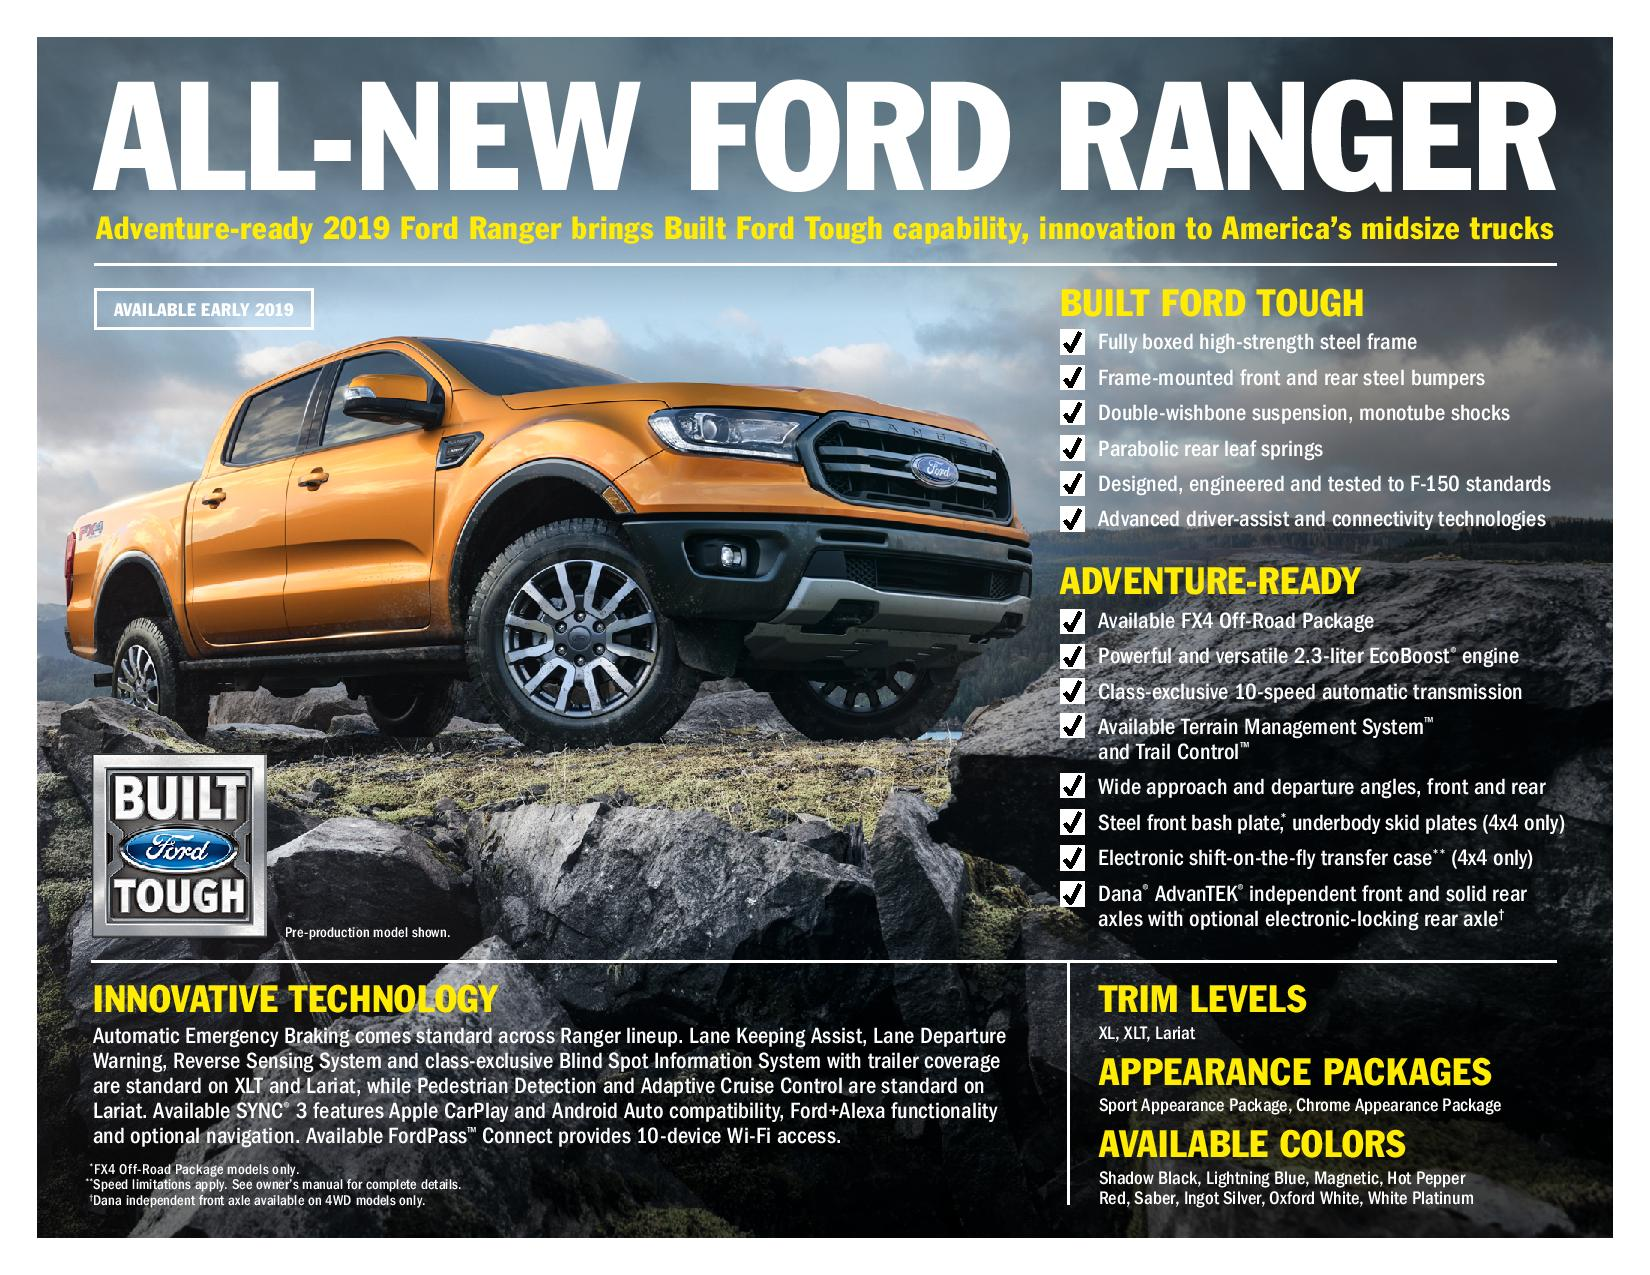 Ford reveals updated Ranger for U.S. market